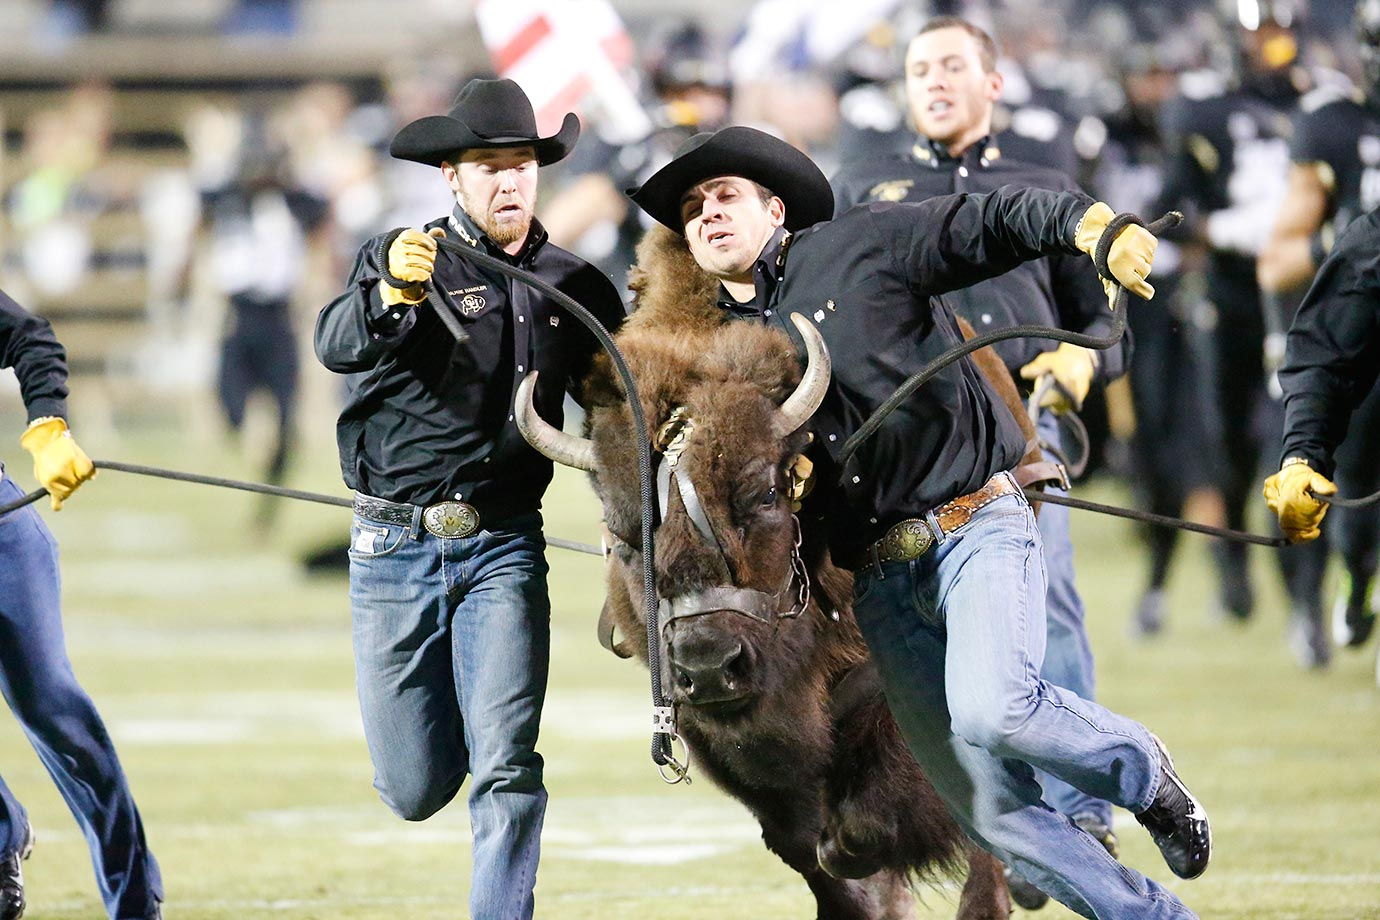 Handlers guide Ralphie, the Colorado Buffaloes mascot, before a game against USC.